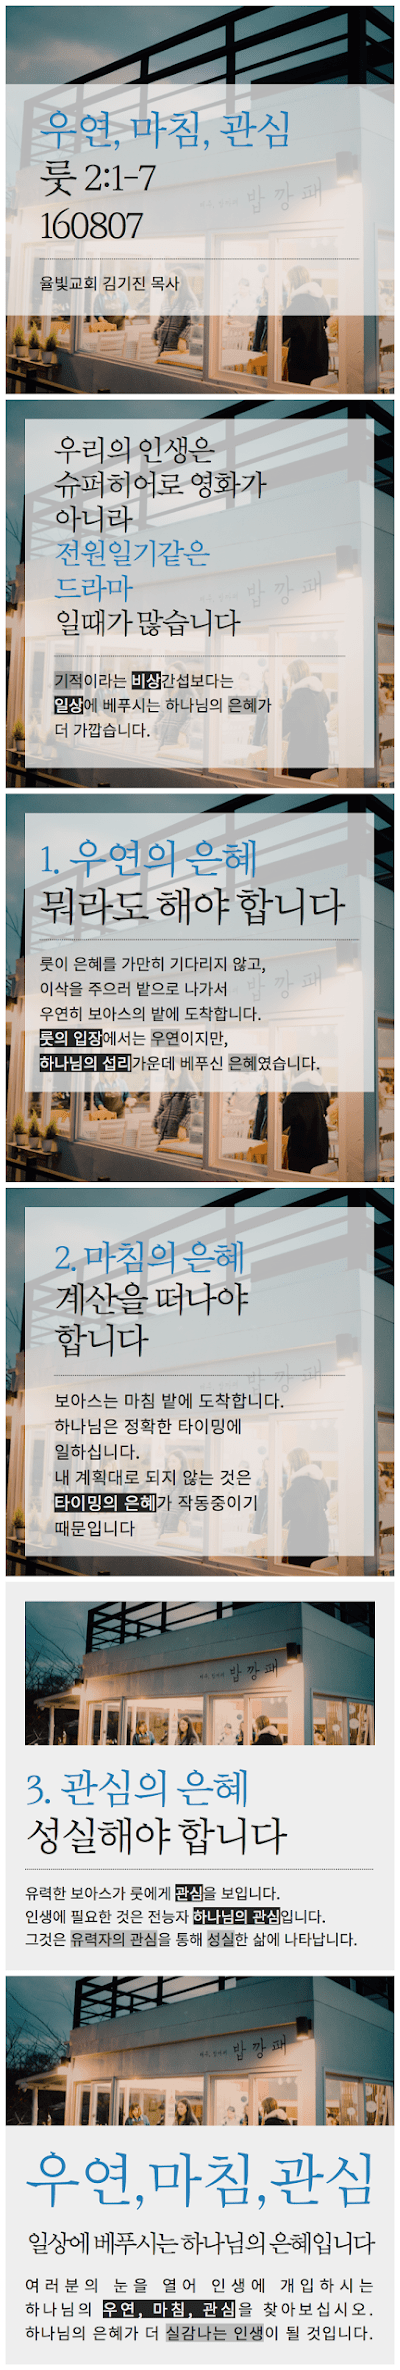 160807_7.png